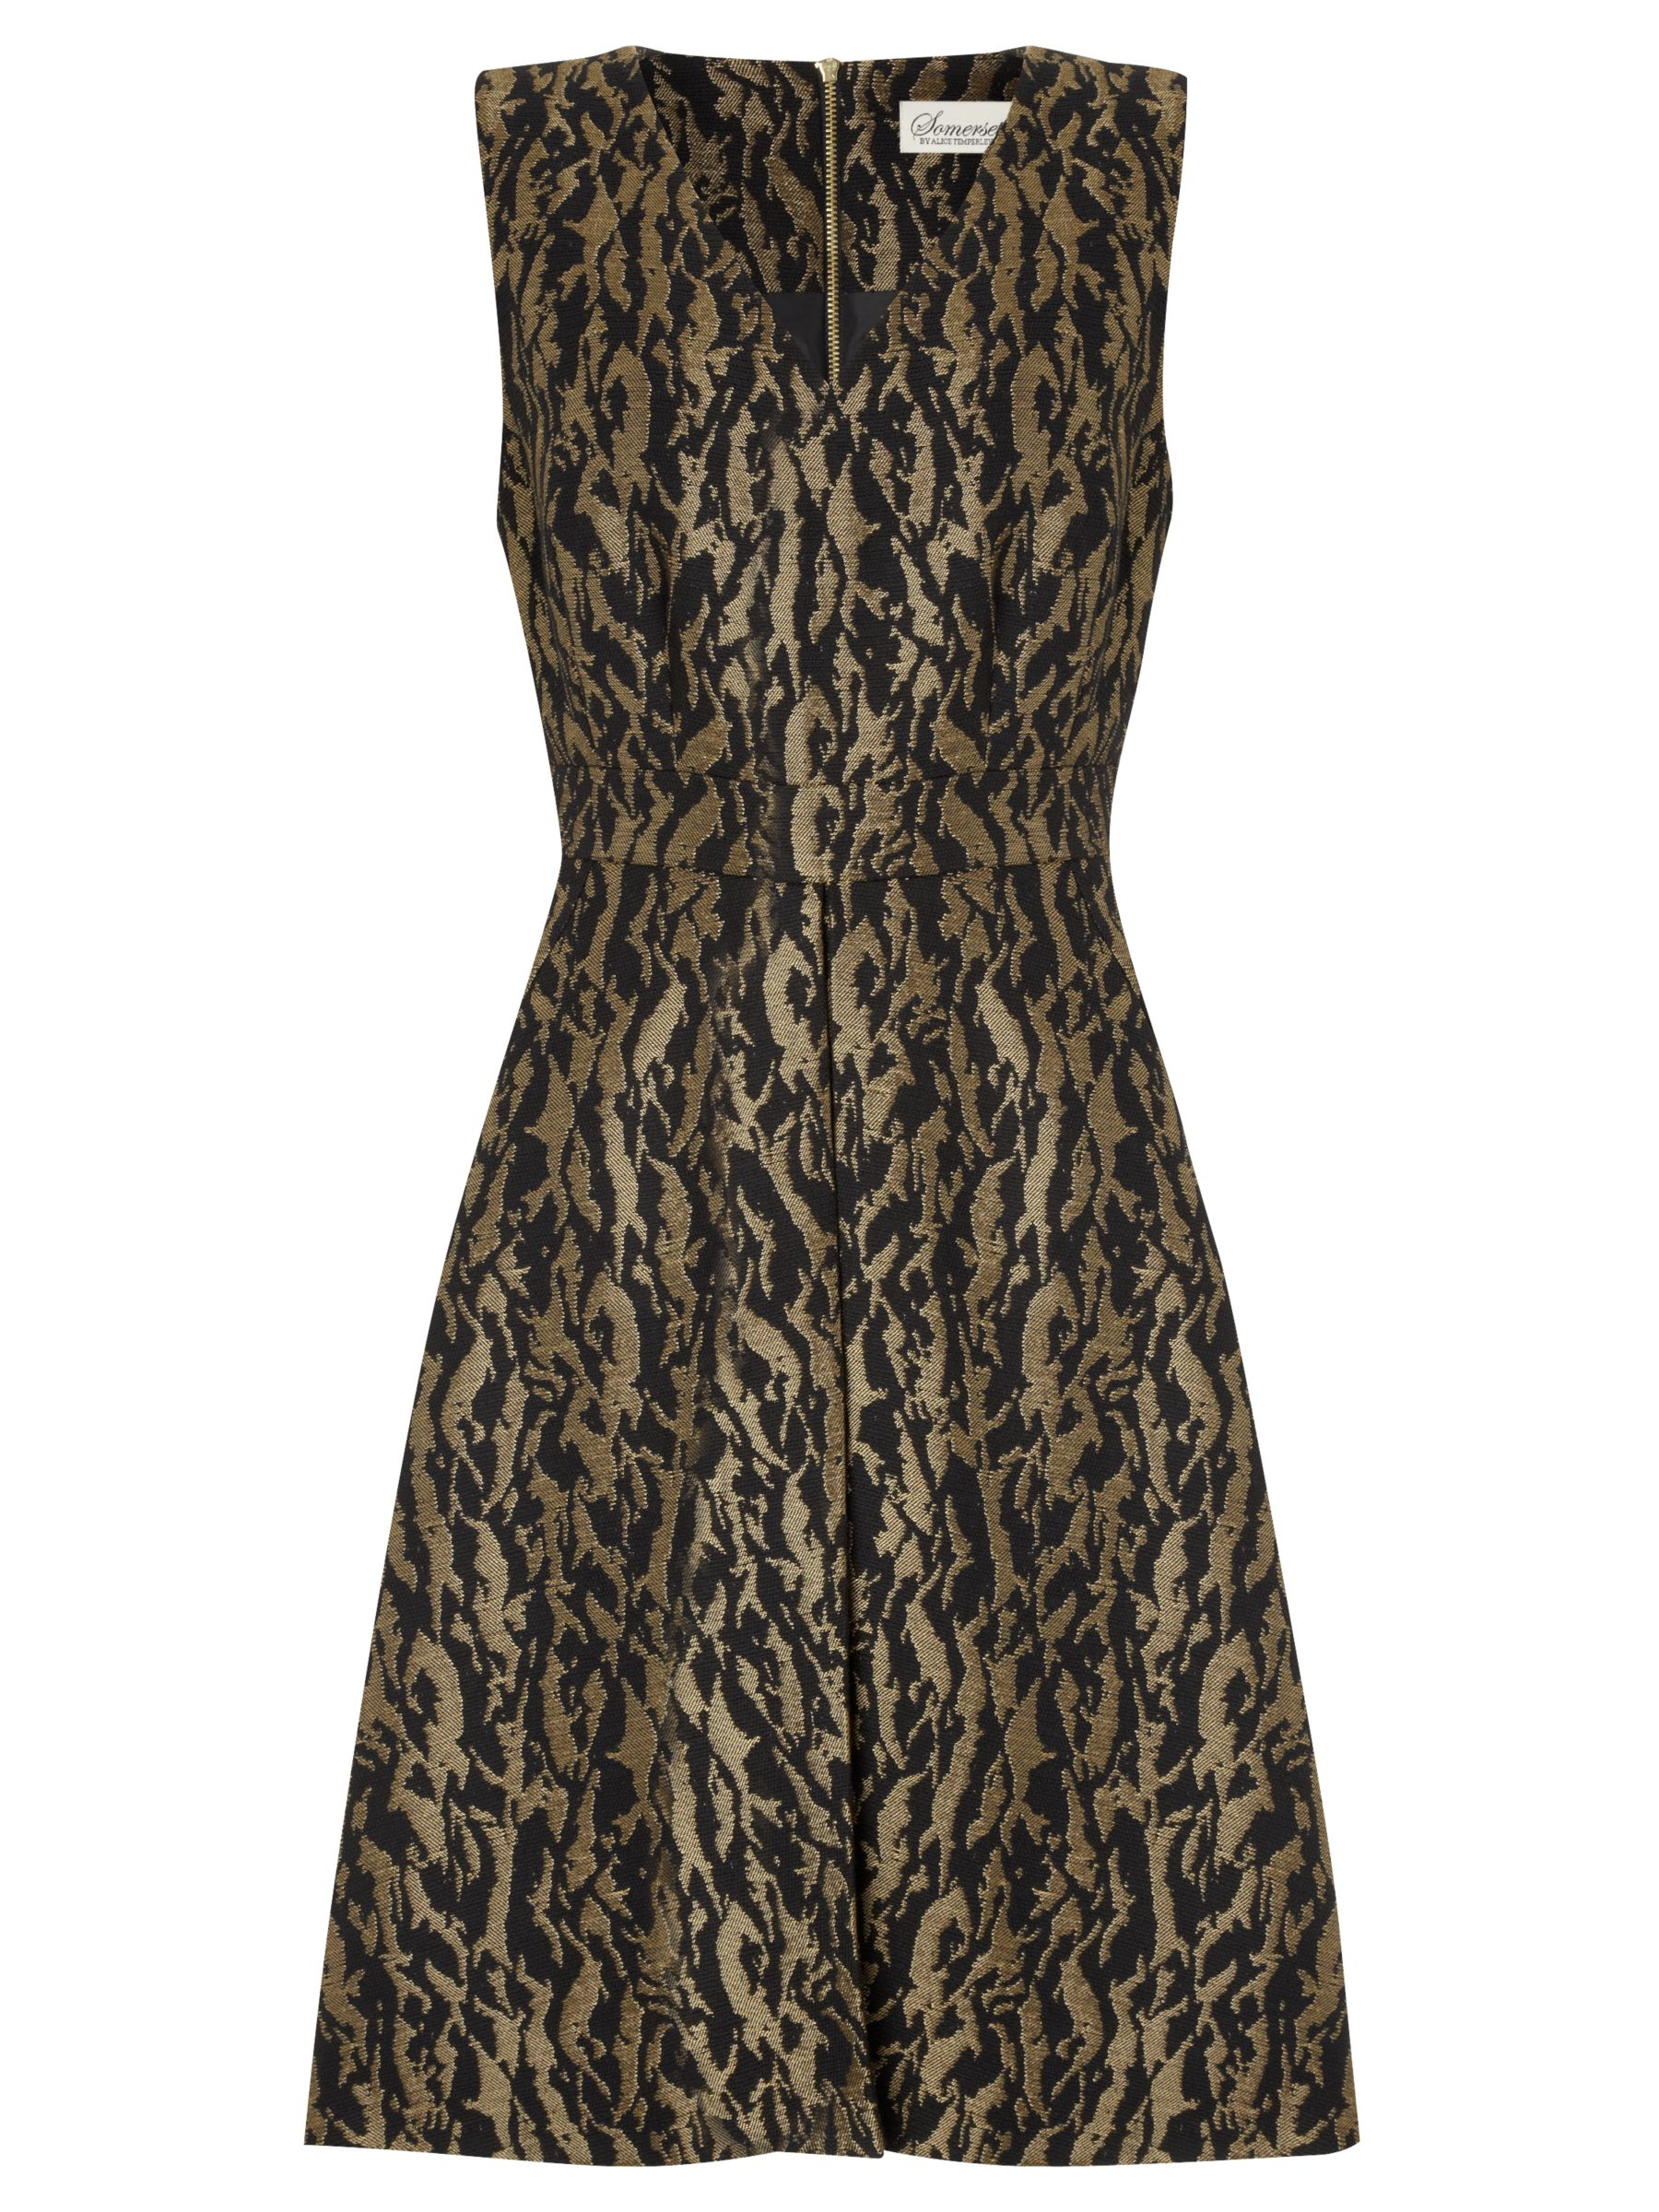 somerset by alice temperley animal jacquard dress black/gold, somerset, alice, temperley, animal, jacquard, dress, black/gold, somerset by alice temperley, clearance, womenswear offers, womens dresses offers, women, womens dresses, party outfits, party dresses, special offers, fashion magazine, brands l-z, 1663294